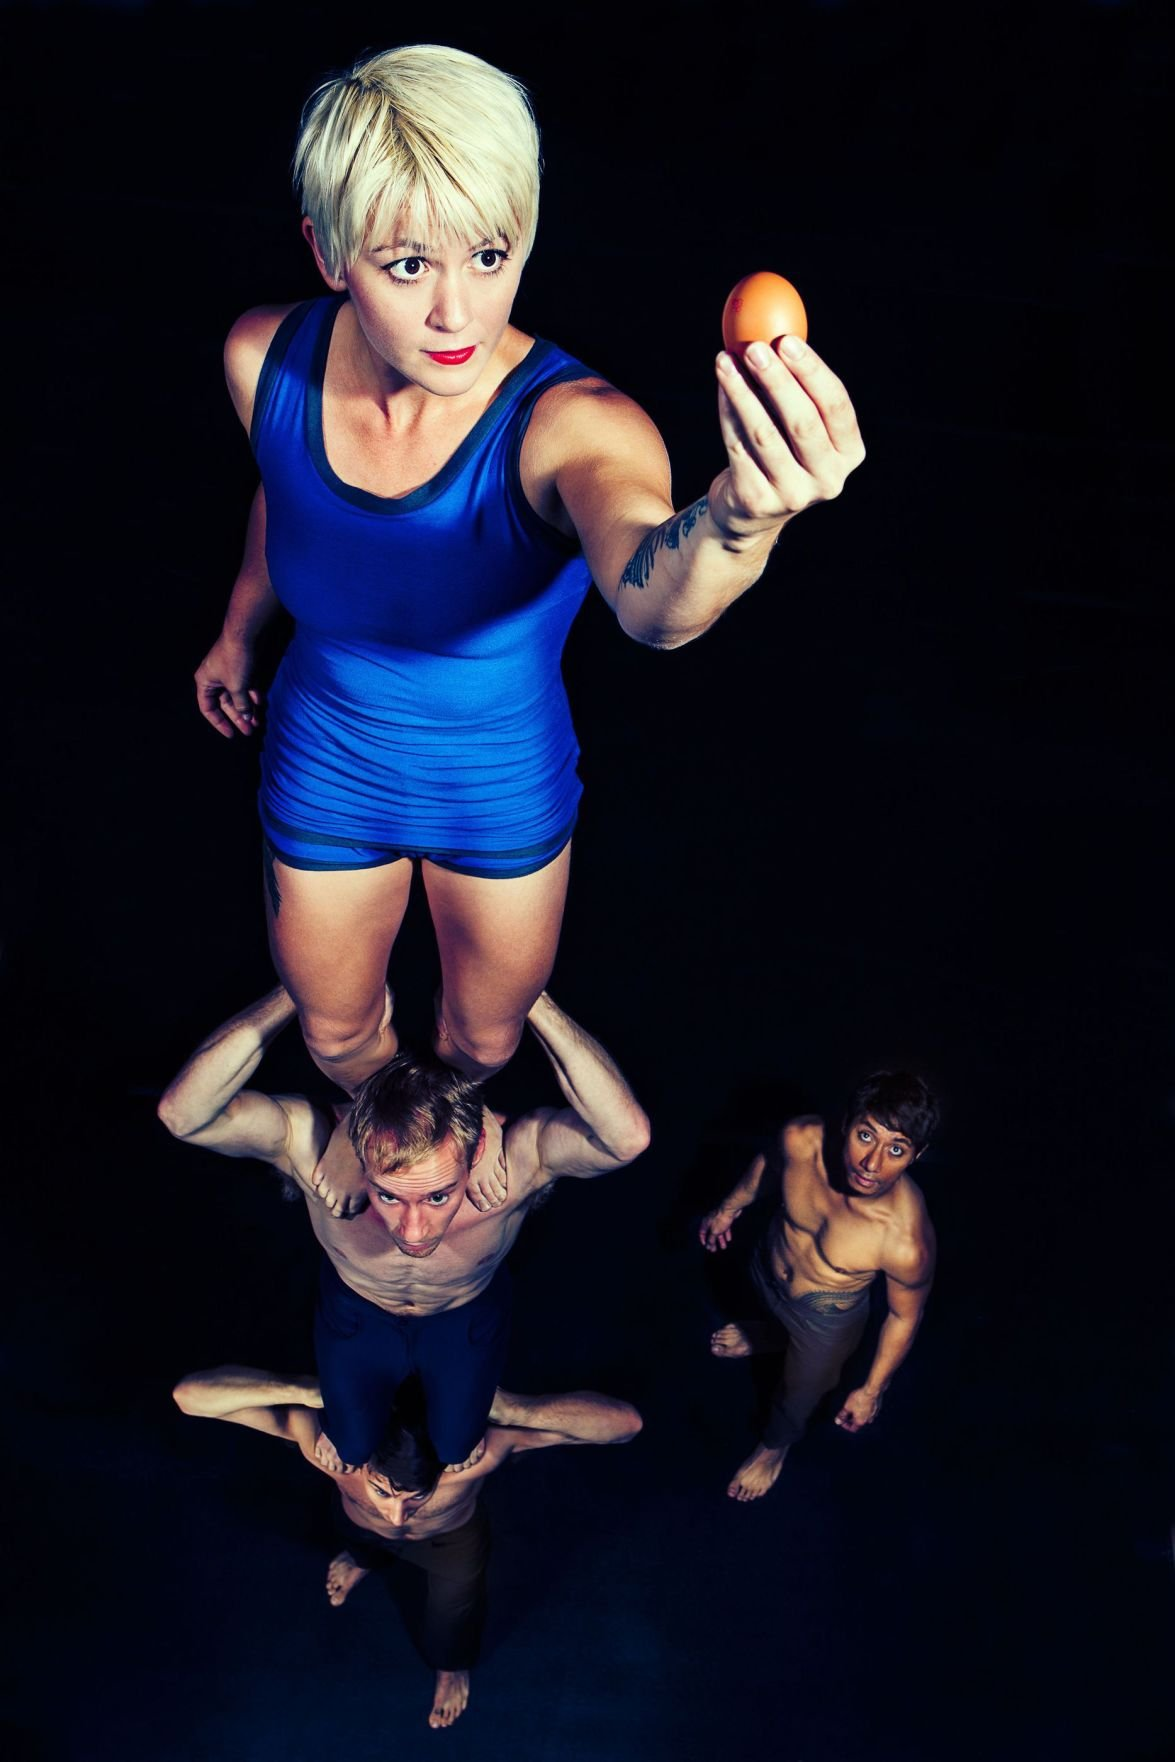 Every moment counts with Casus Circus